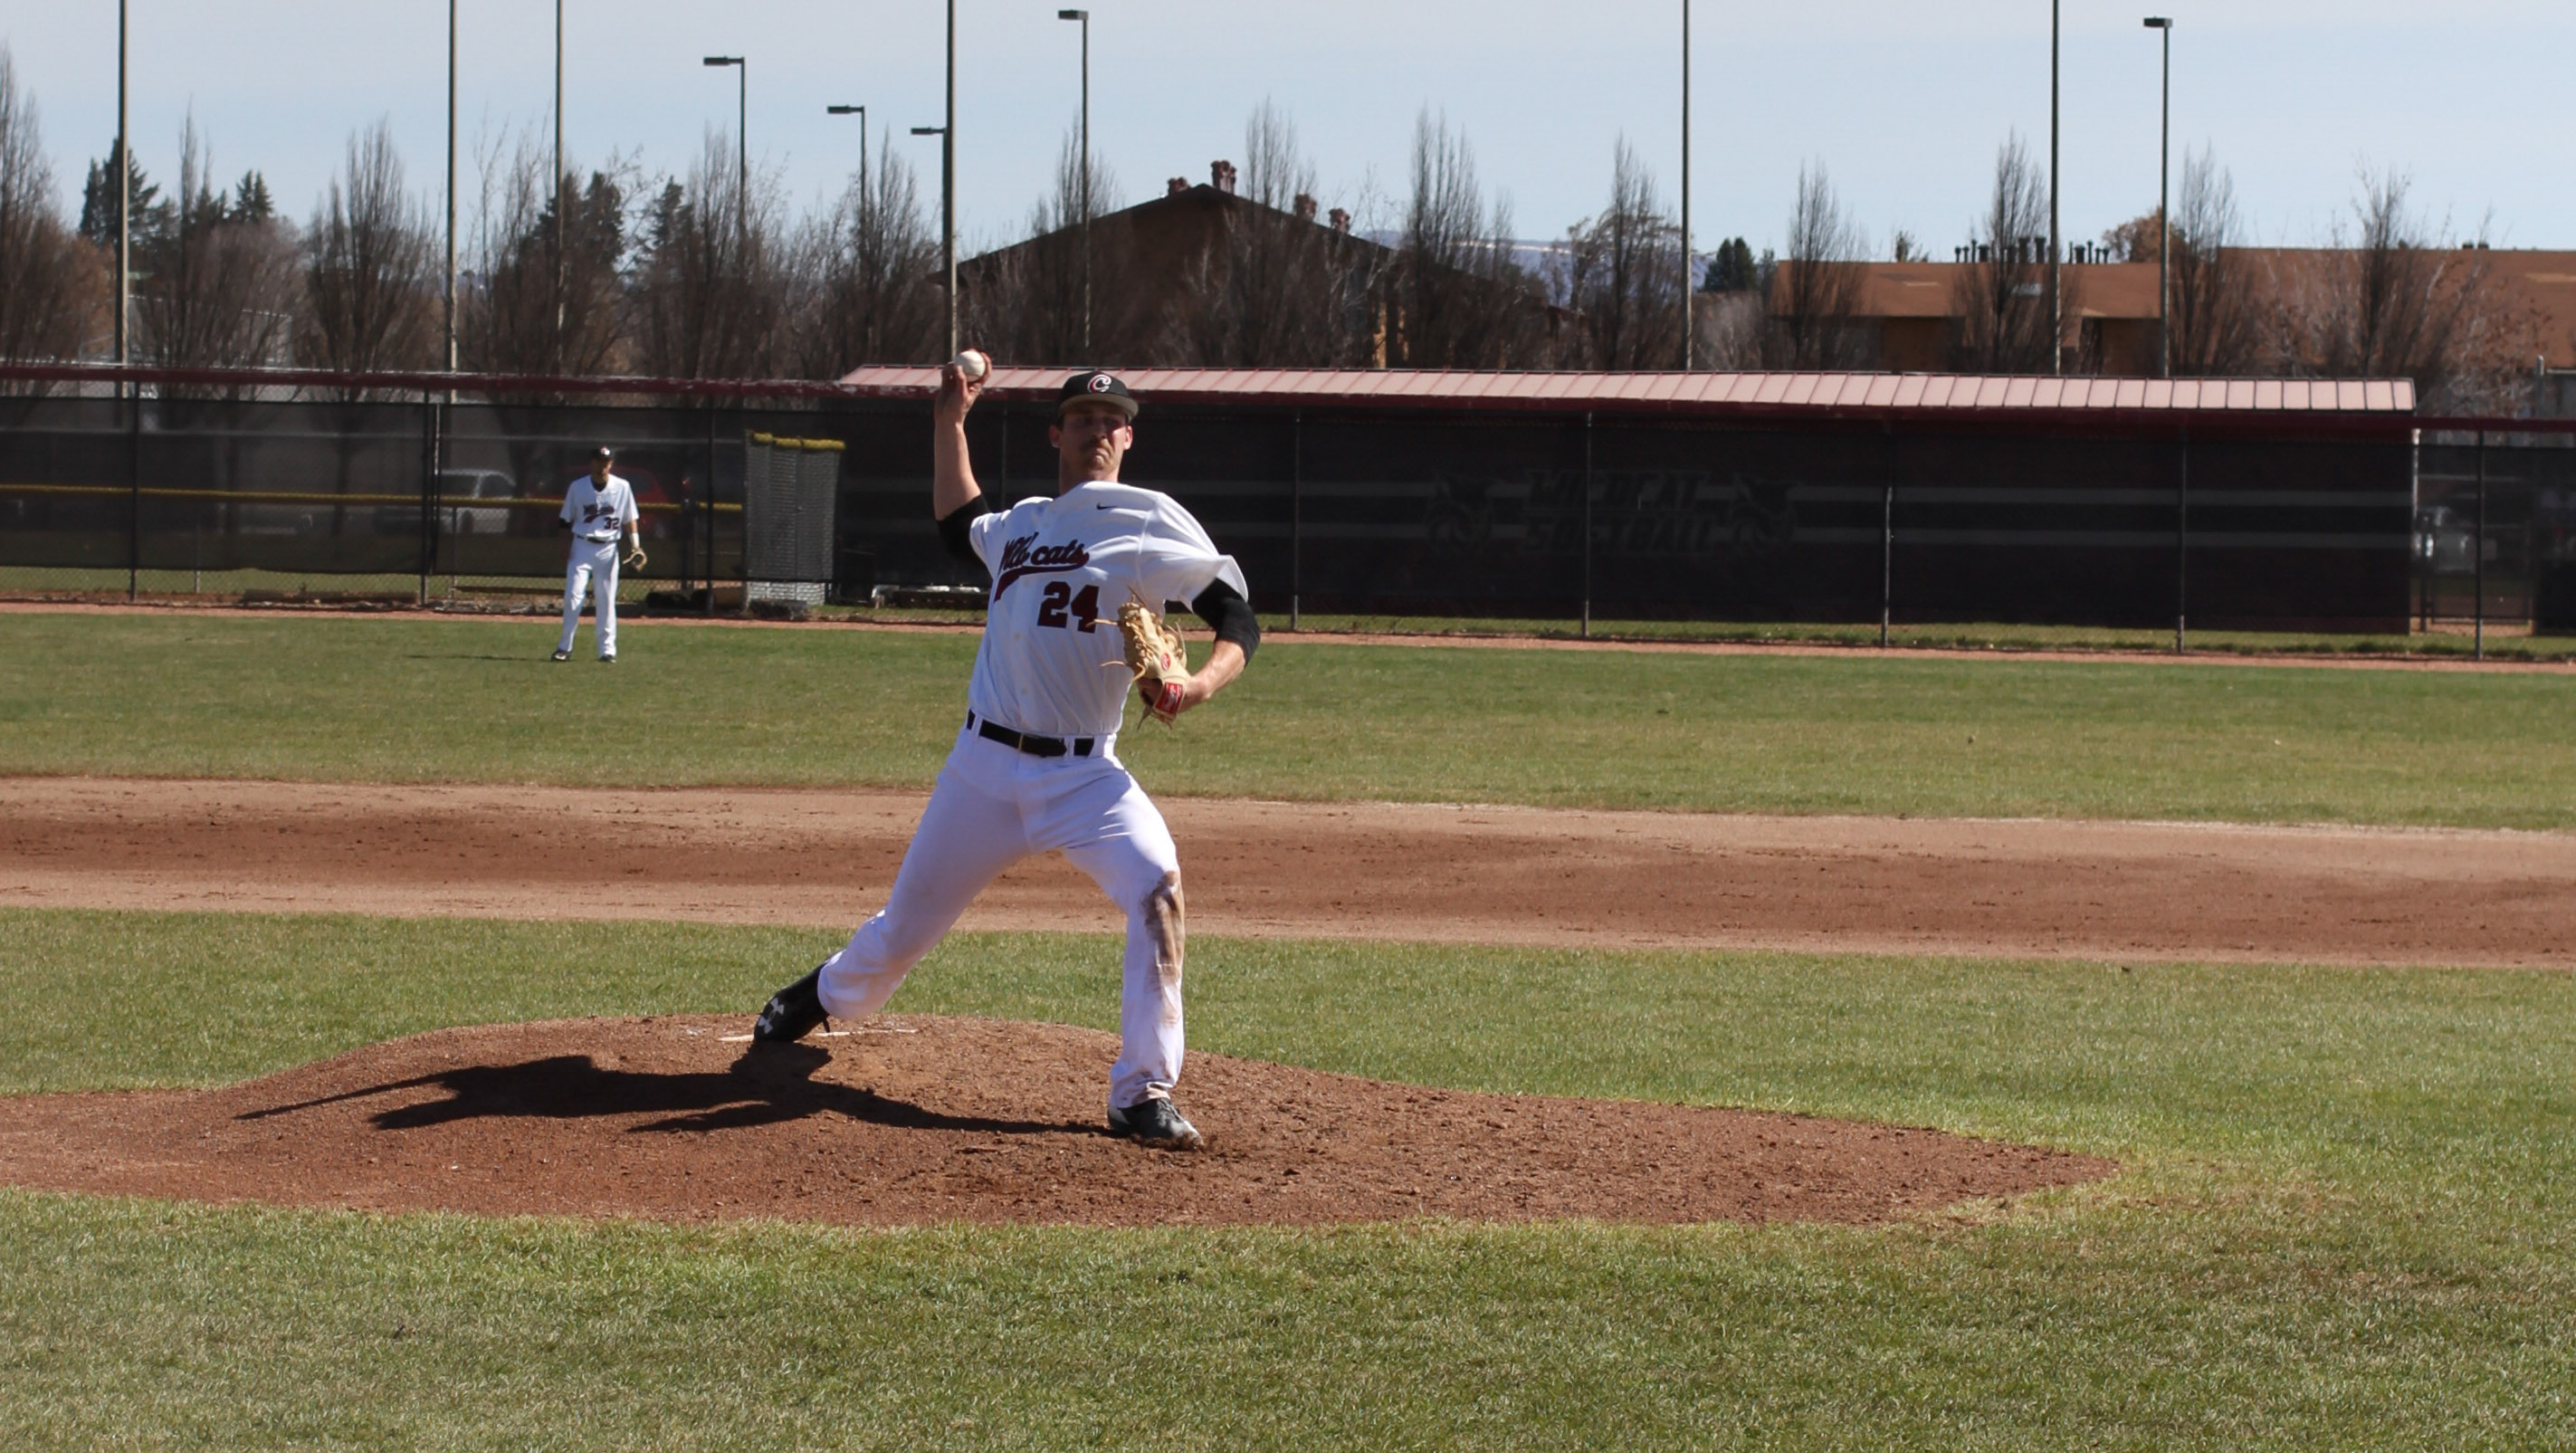 Jake Levin throwing a pitch during his three-run, complete-game performance against Montana State University Billings.